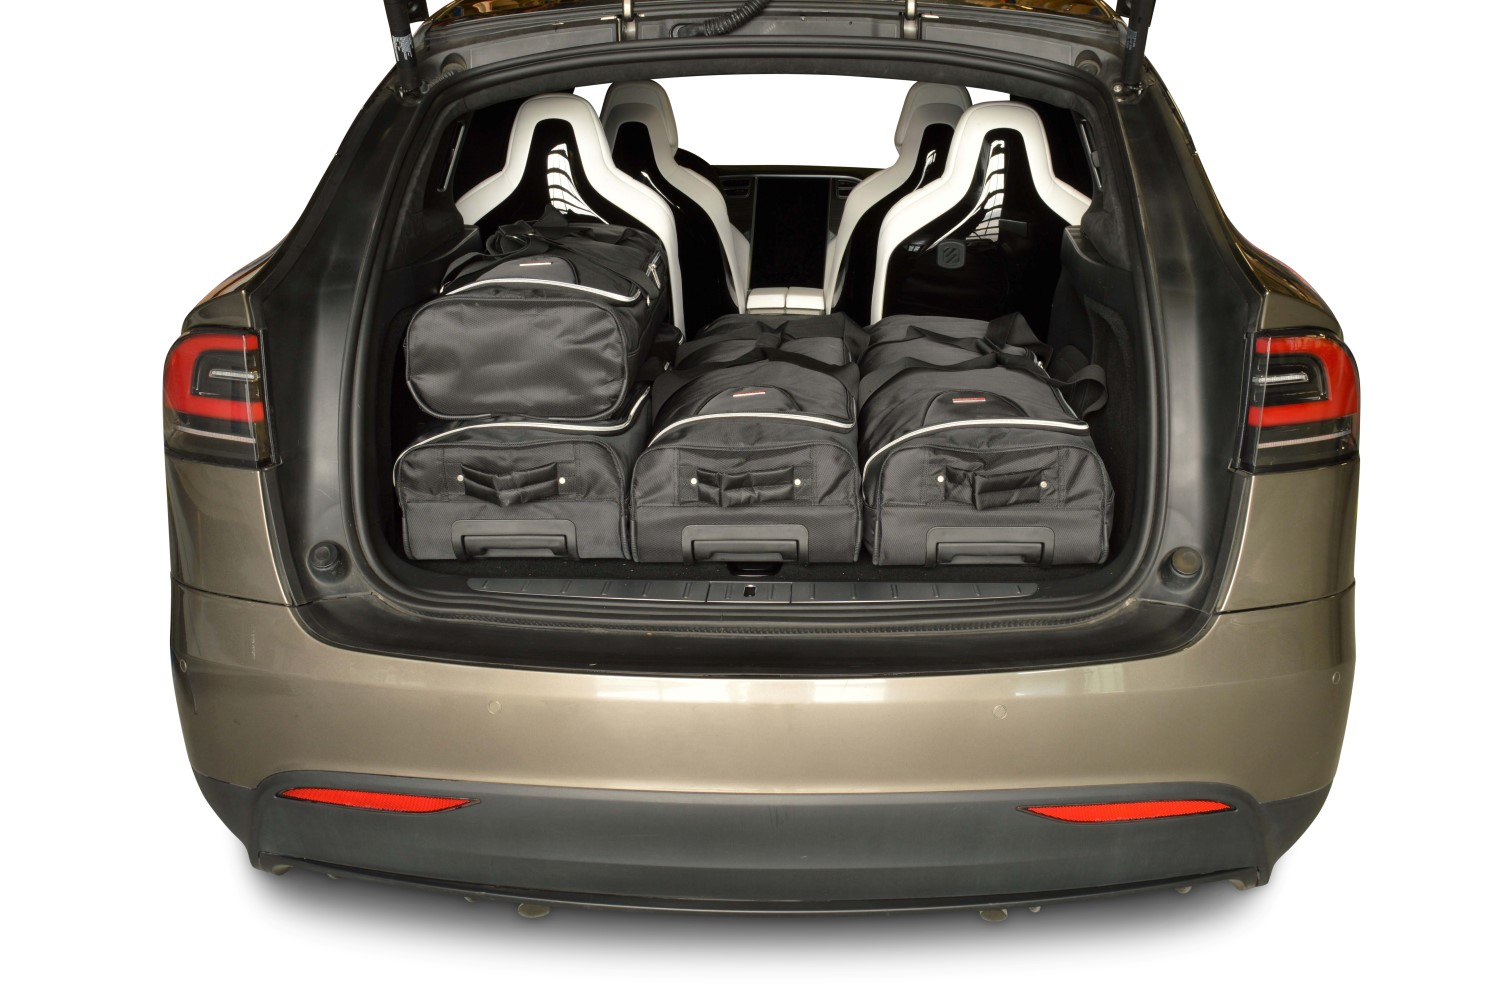 hight resolution of tesla model x 2015 present car bags travel bags